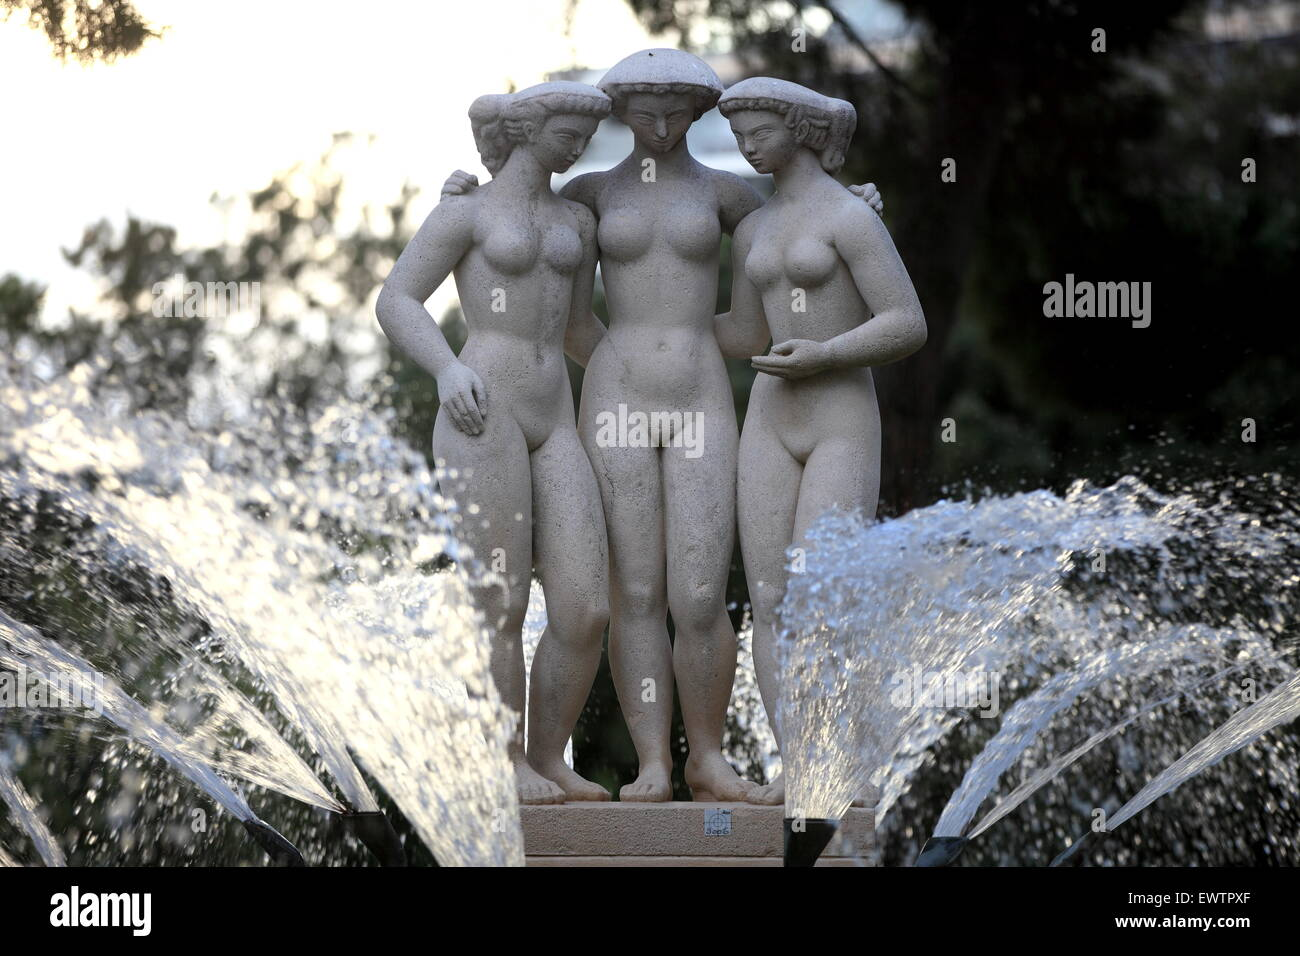 Naked women in fountain are